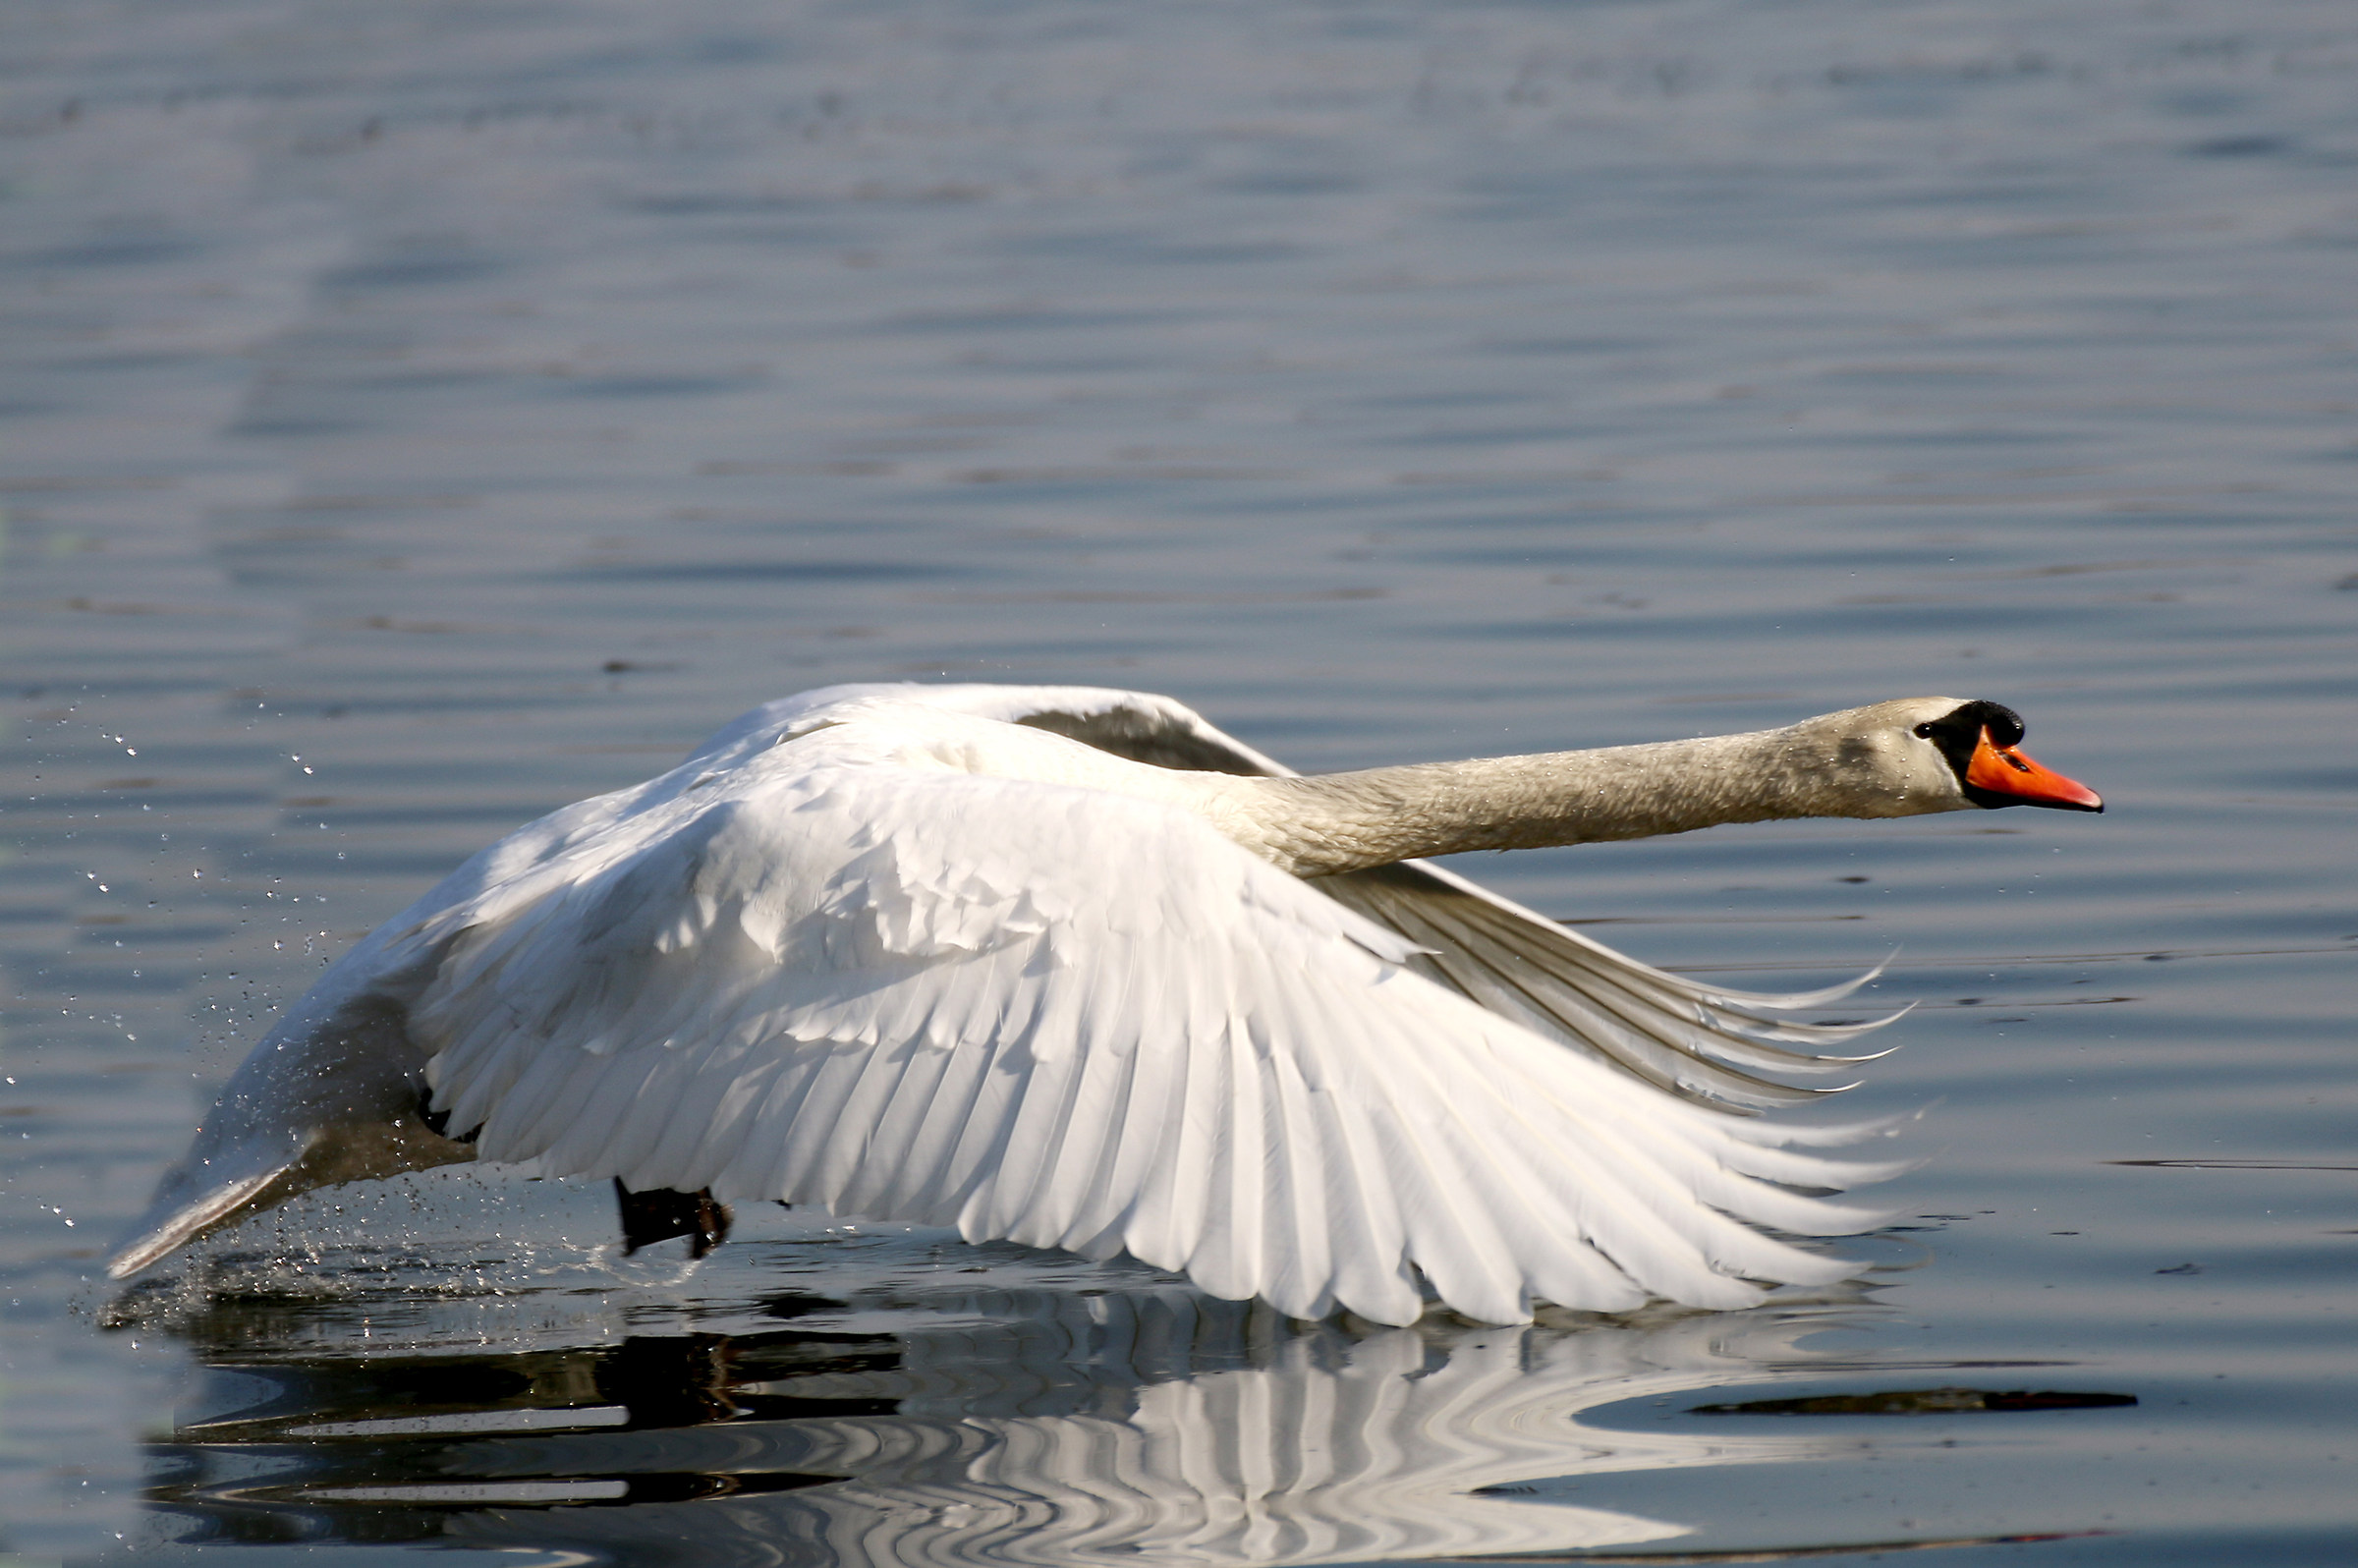 The Flight of the Swan 2...